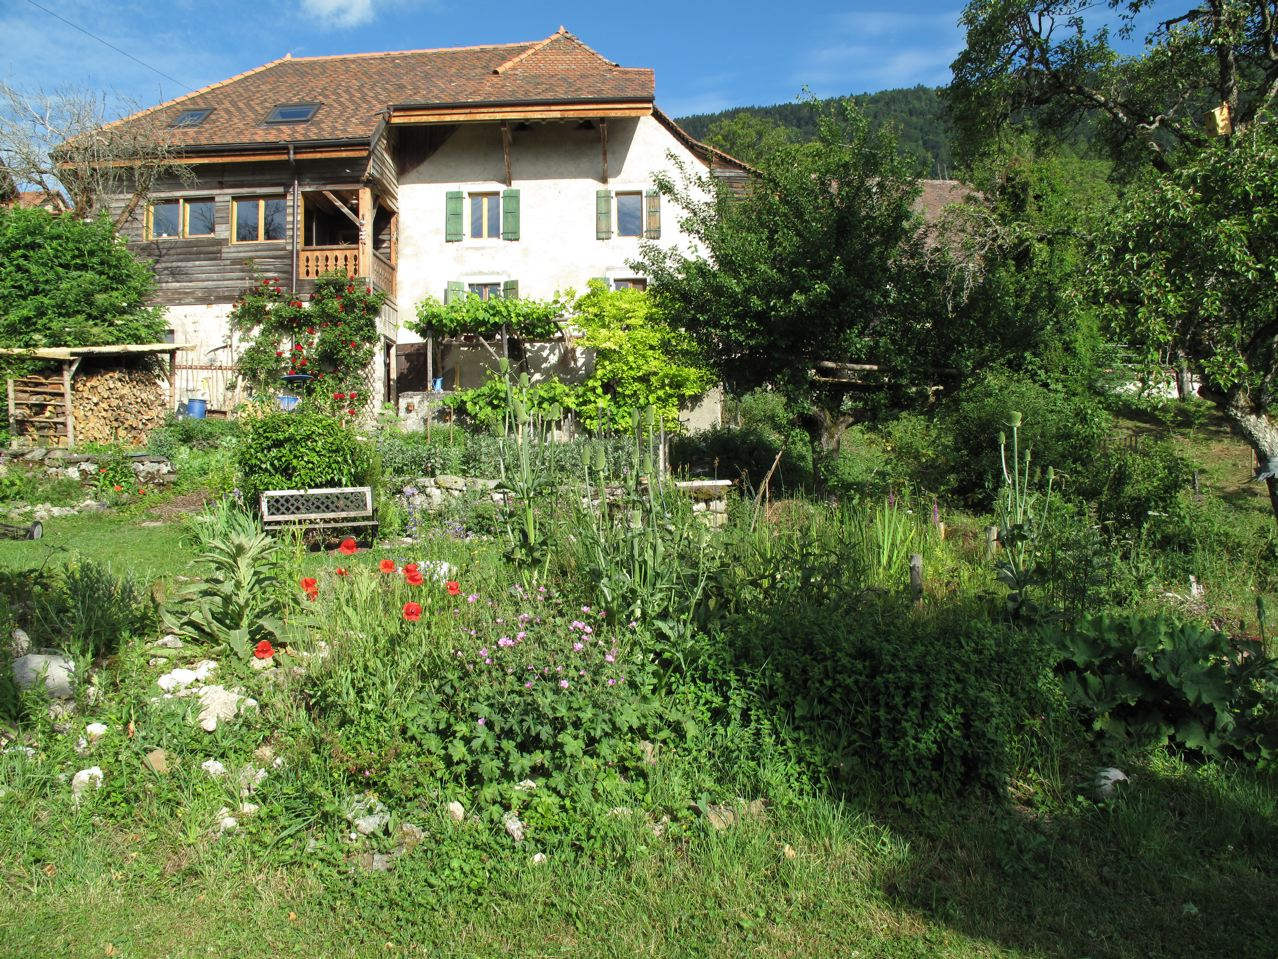 Le jardin naturel la maison nature for Jardin naturel